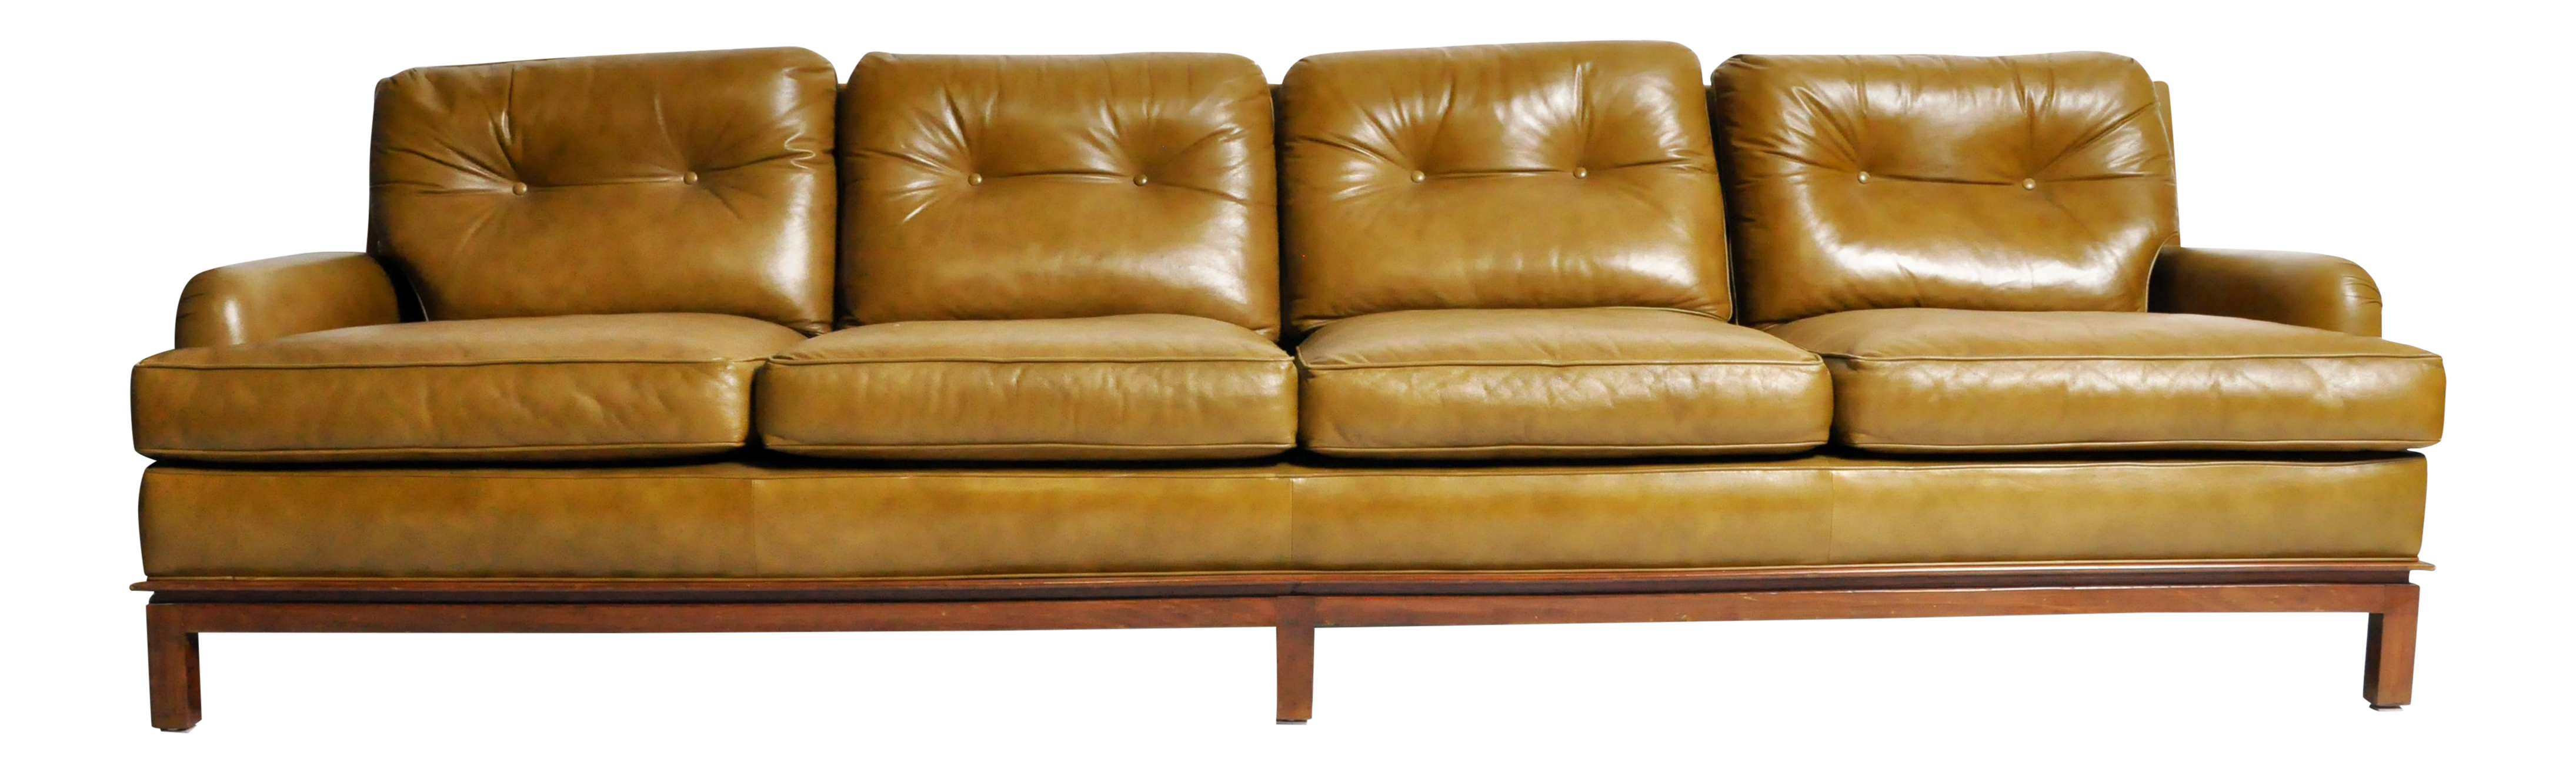 Mid Century Modern Green Leather Sofa With Hardwood Base By Edward Wormley